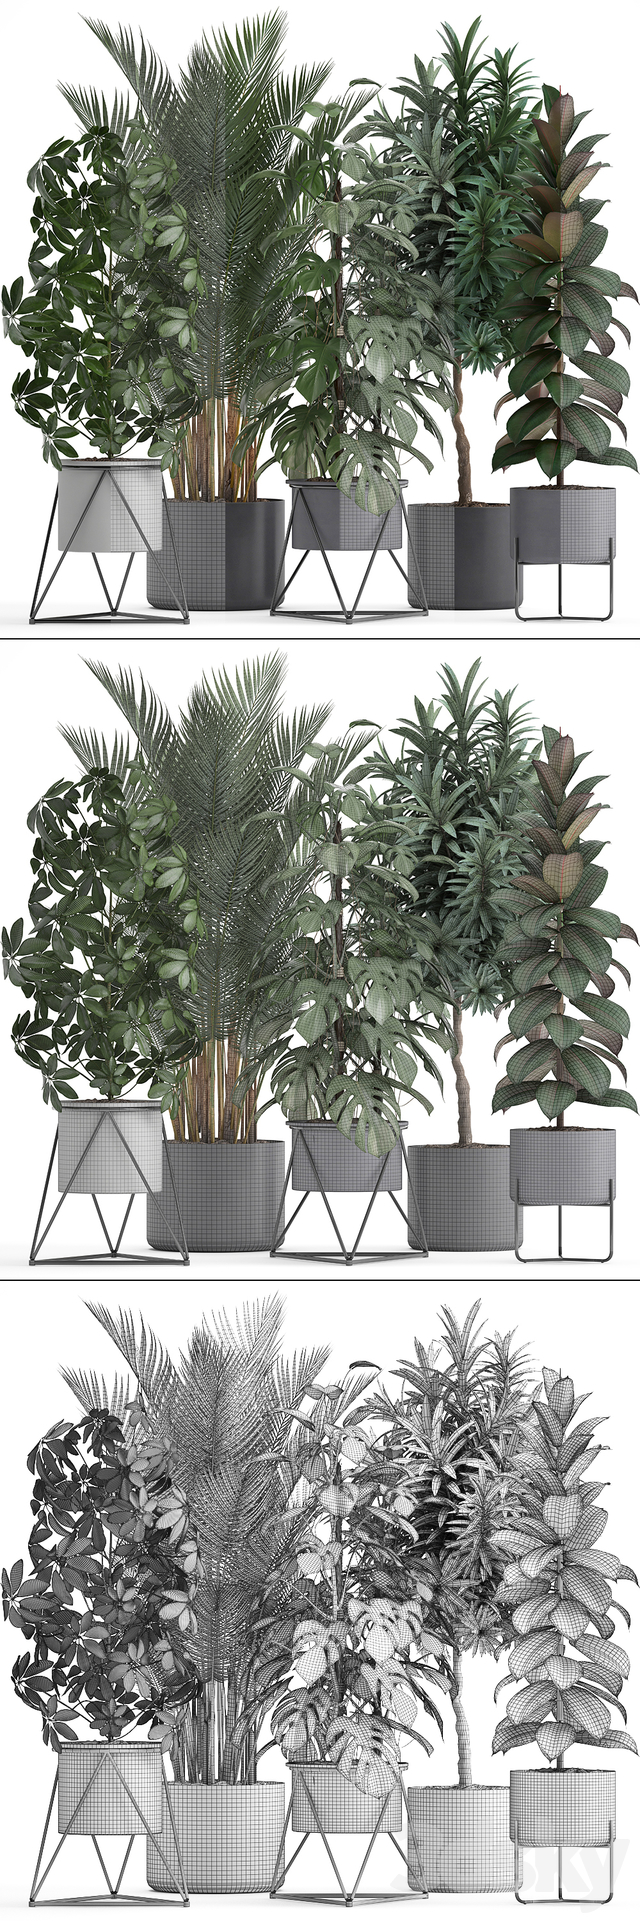 Plant collection 284.